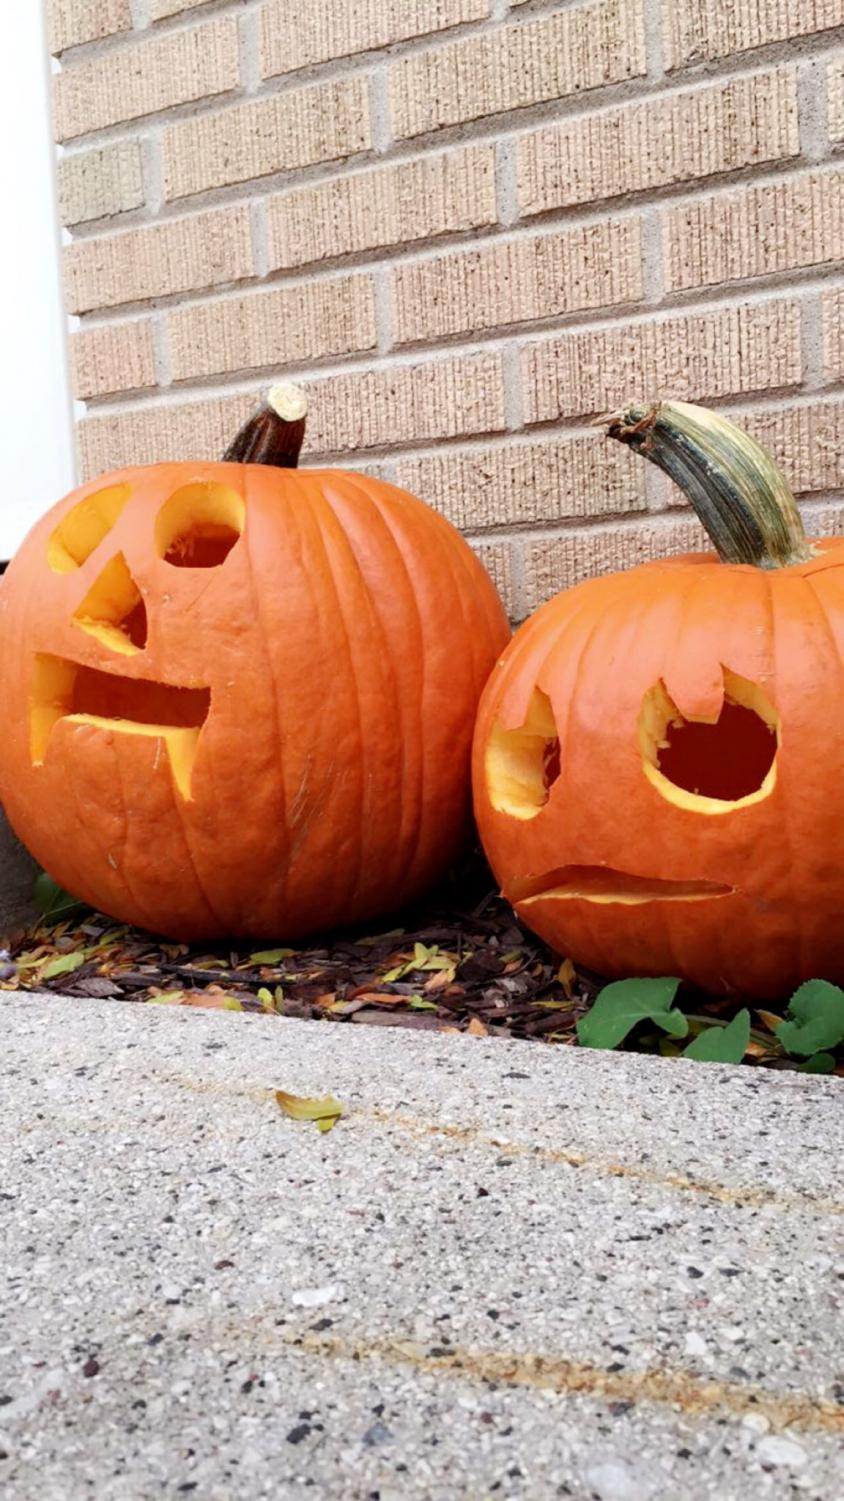 Fun fact: carving pumpkins started in Ireland. It started by carving beets, potatoes, etc.